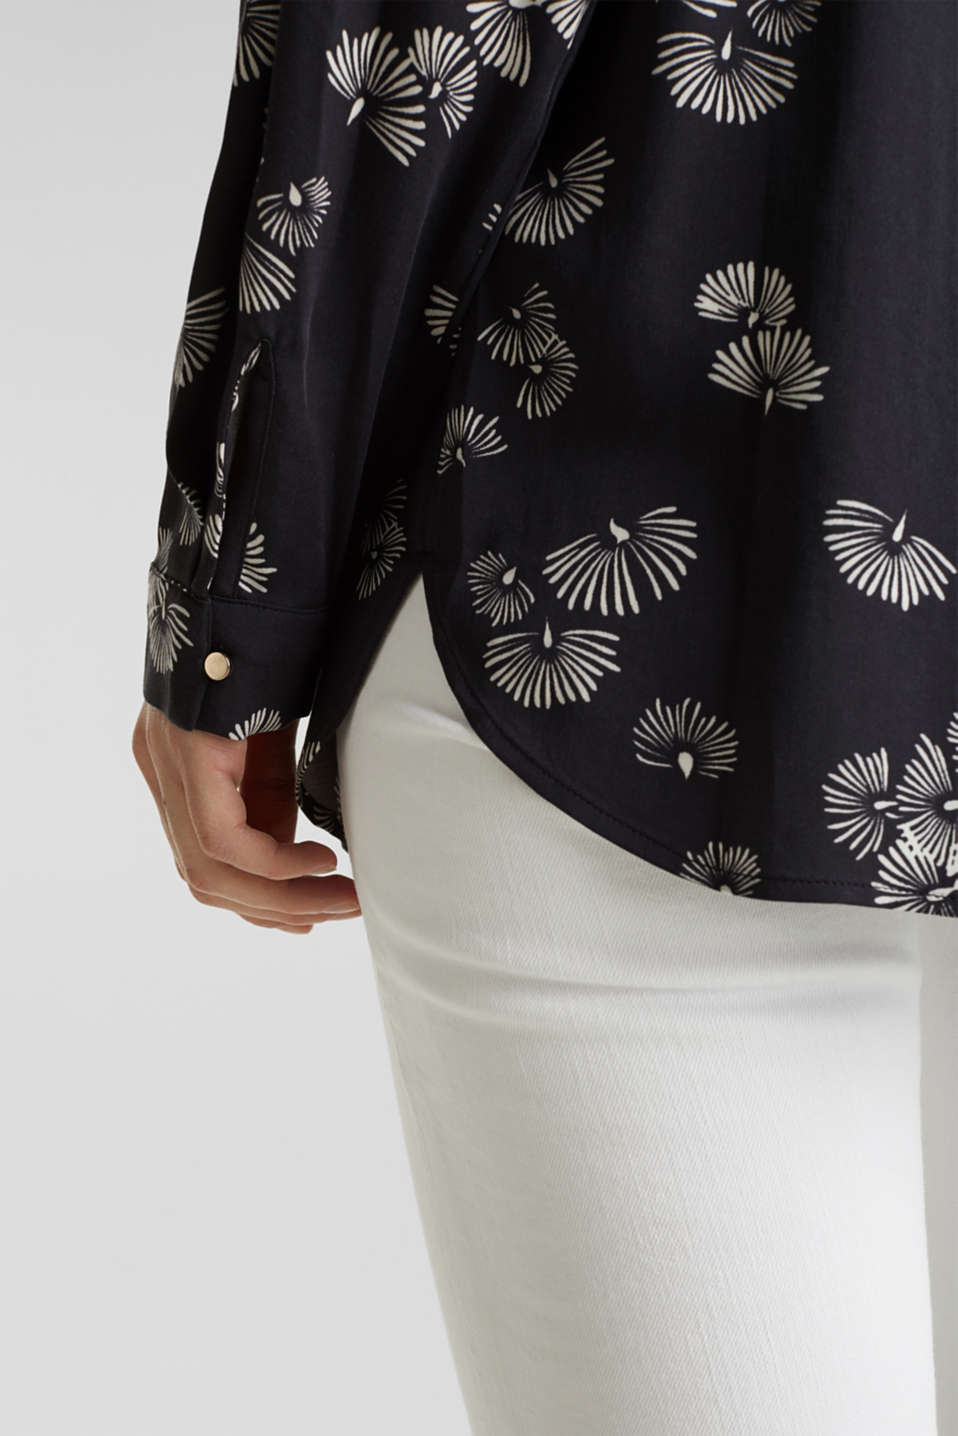 Printed blouse with a decorative metal element, BLACK 3, detail image number 2